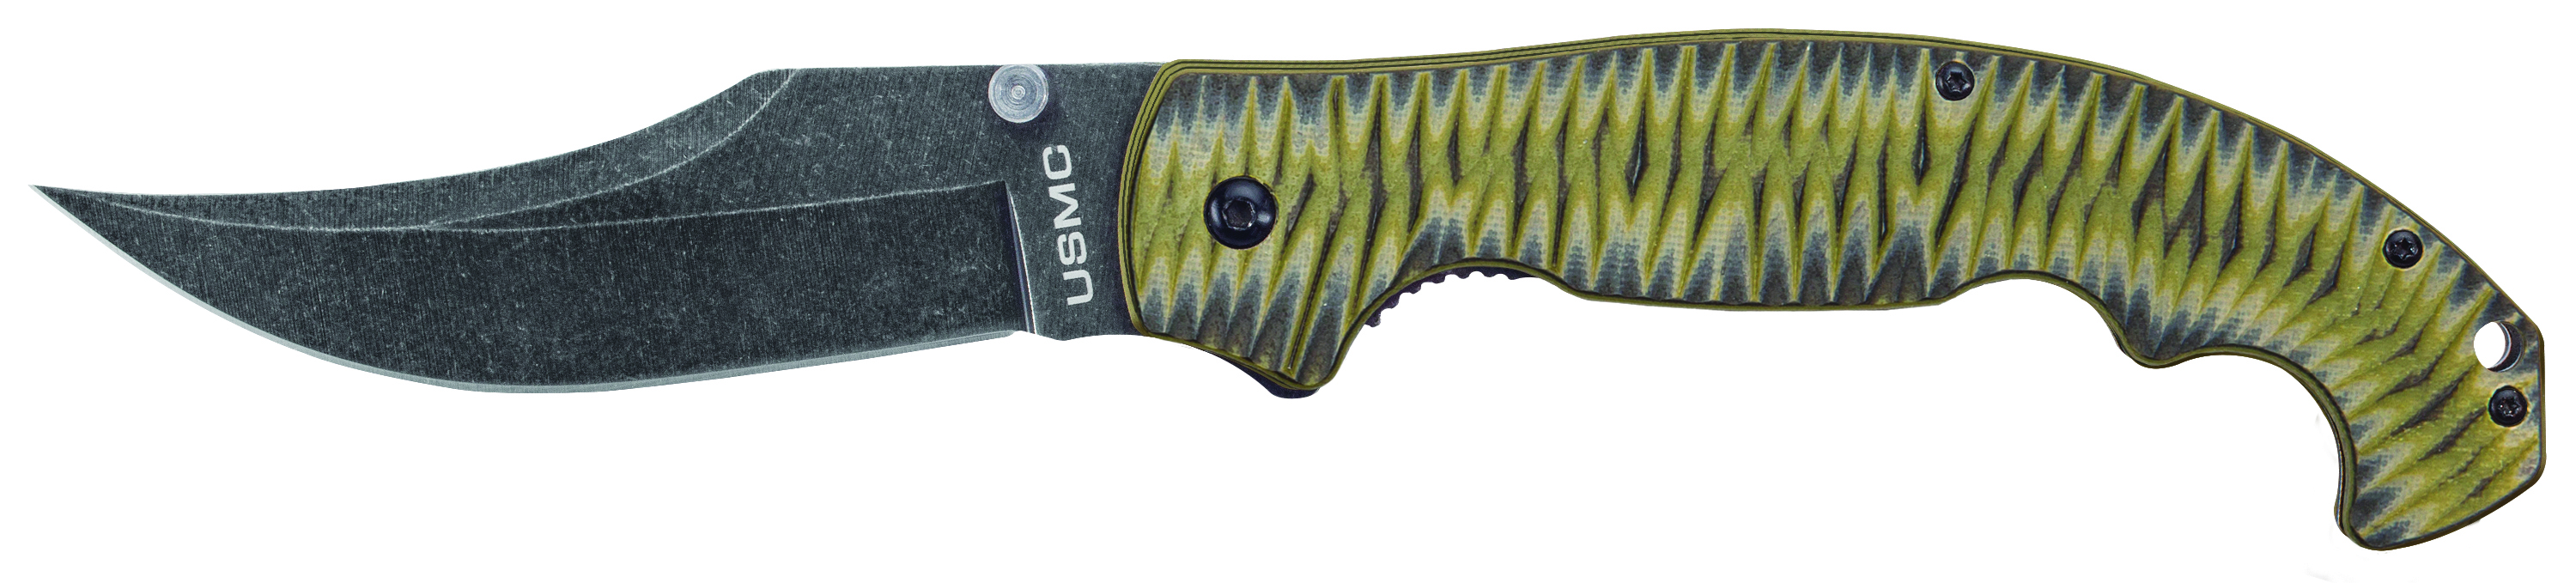 UC3291 - 2018N UNITED CUTLERY USMC FALLOUT ASSISTED OPENING TACTICAL FOLDER